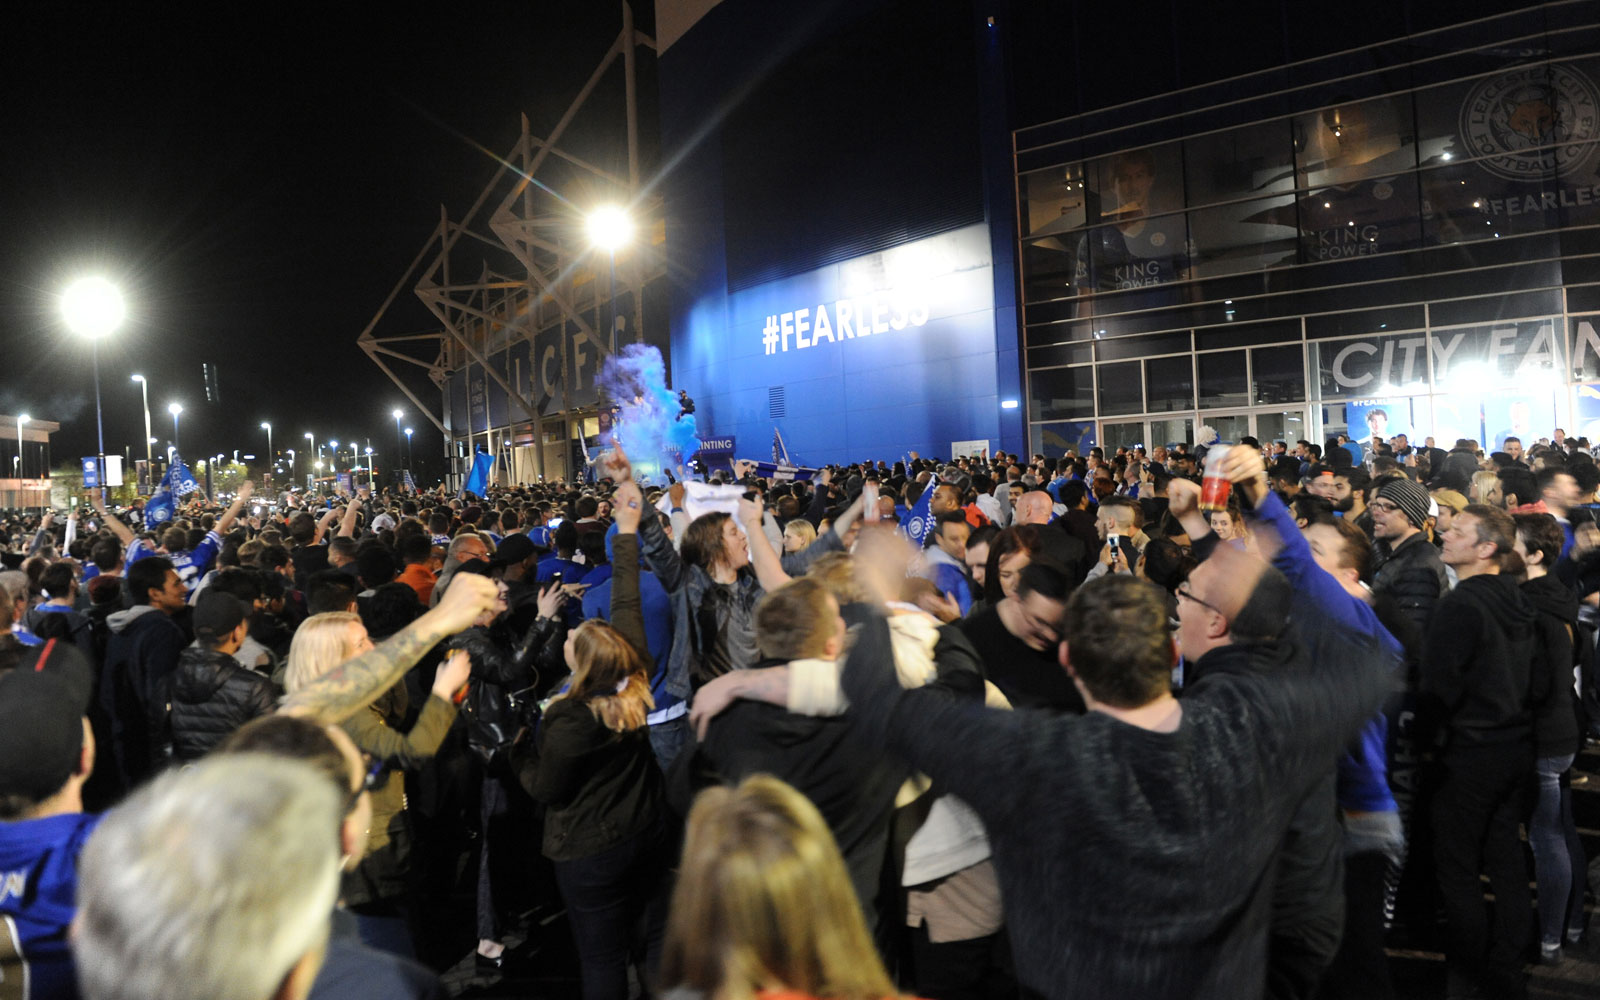 Leicester fans gather en masse around King Power Stadium to celebrate their Premier League title